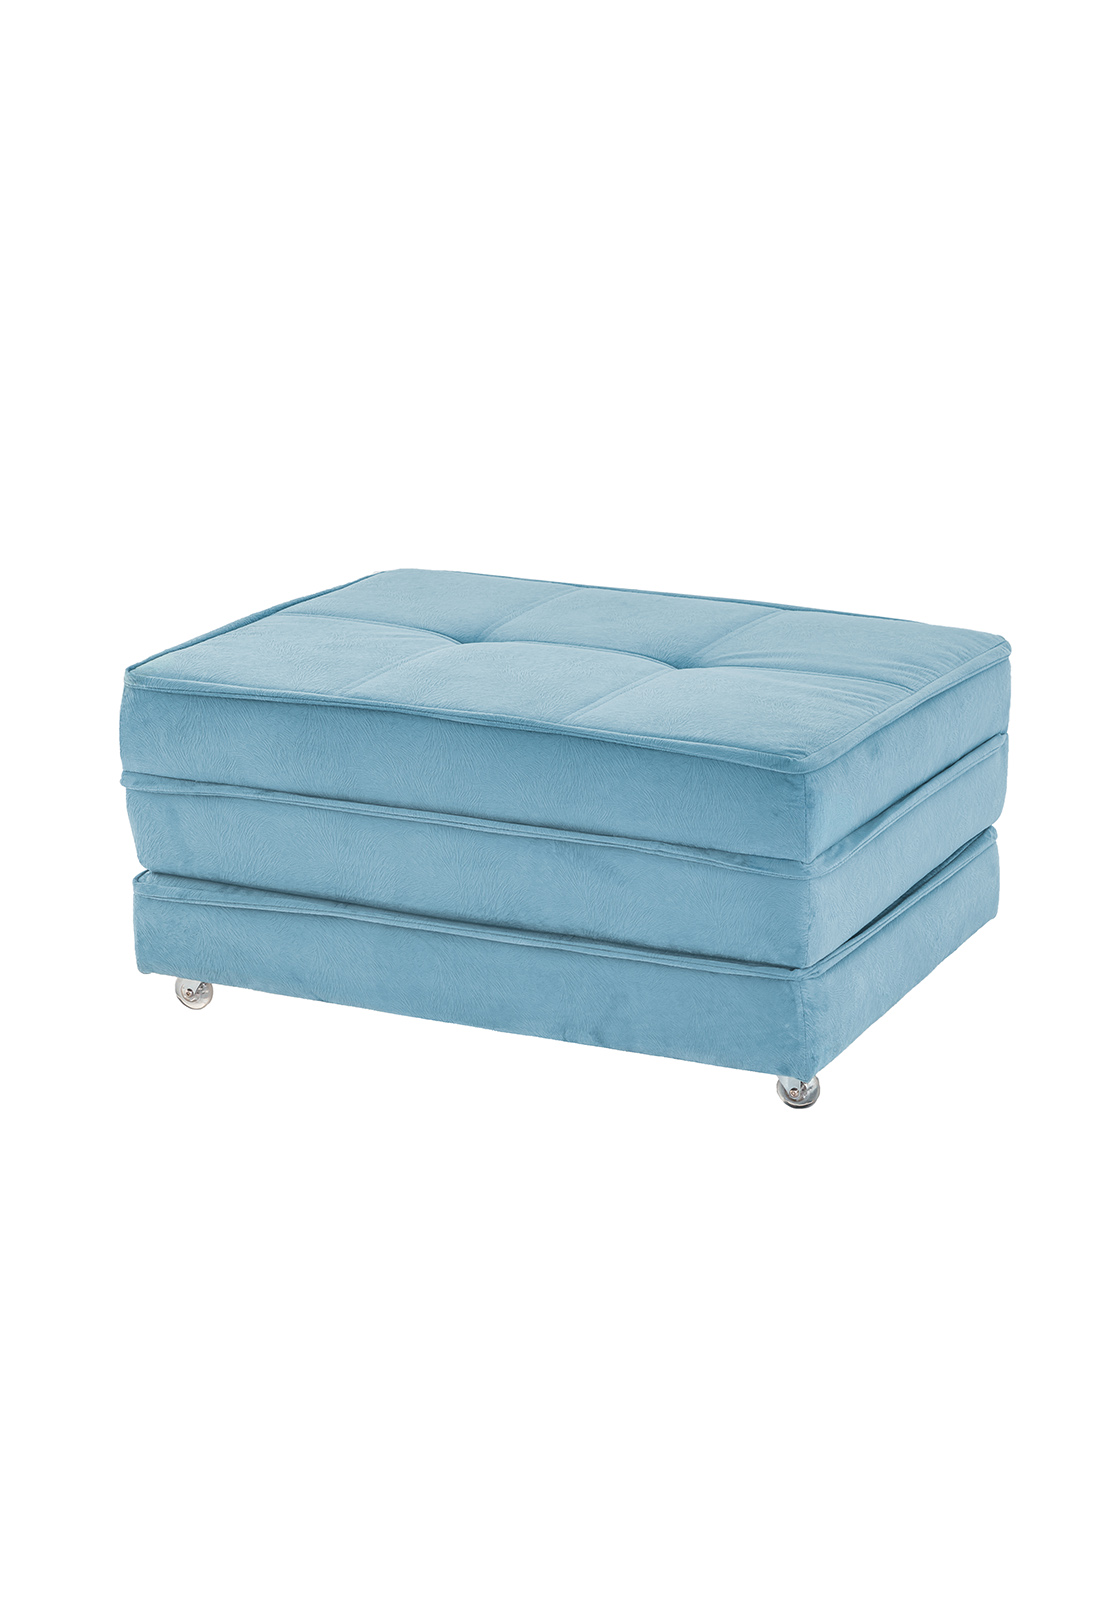 Puff cama azul rio decor for Puff cama 1 plaza